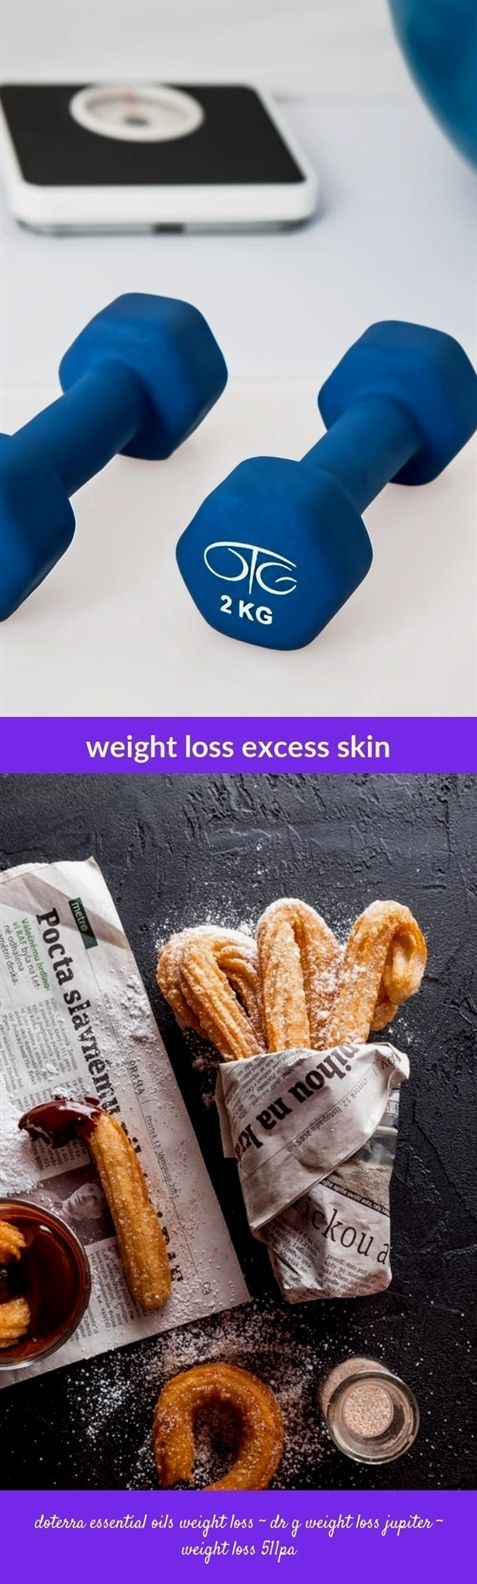 Weight Loss Excess Skin 217 20180710162129 41 Weight Loss Recipes